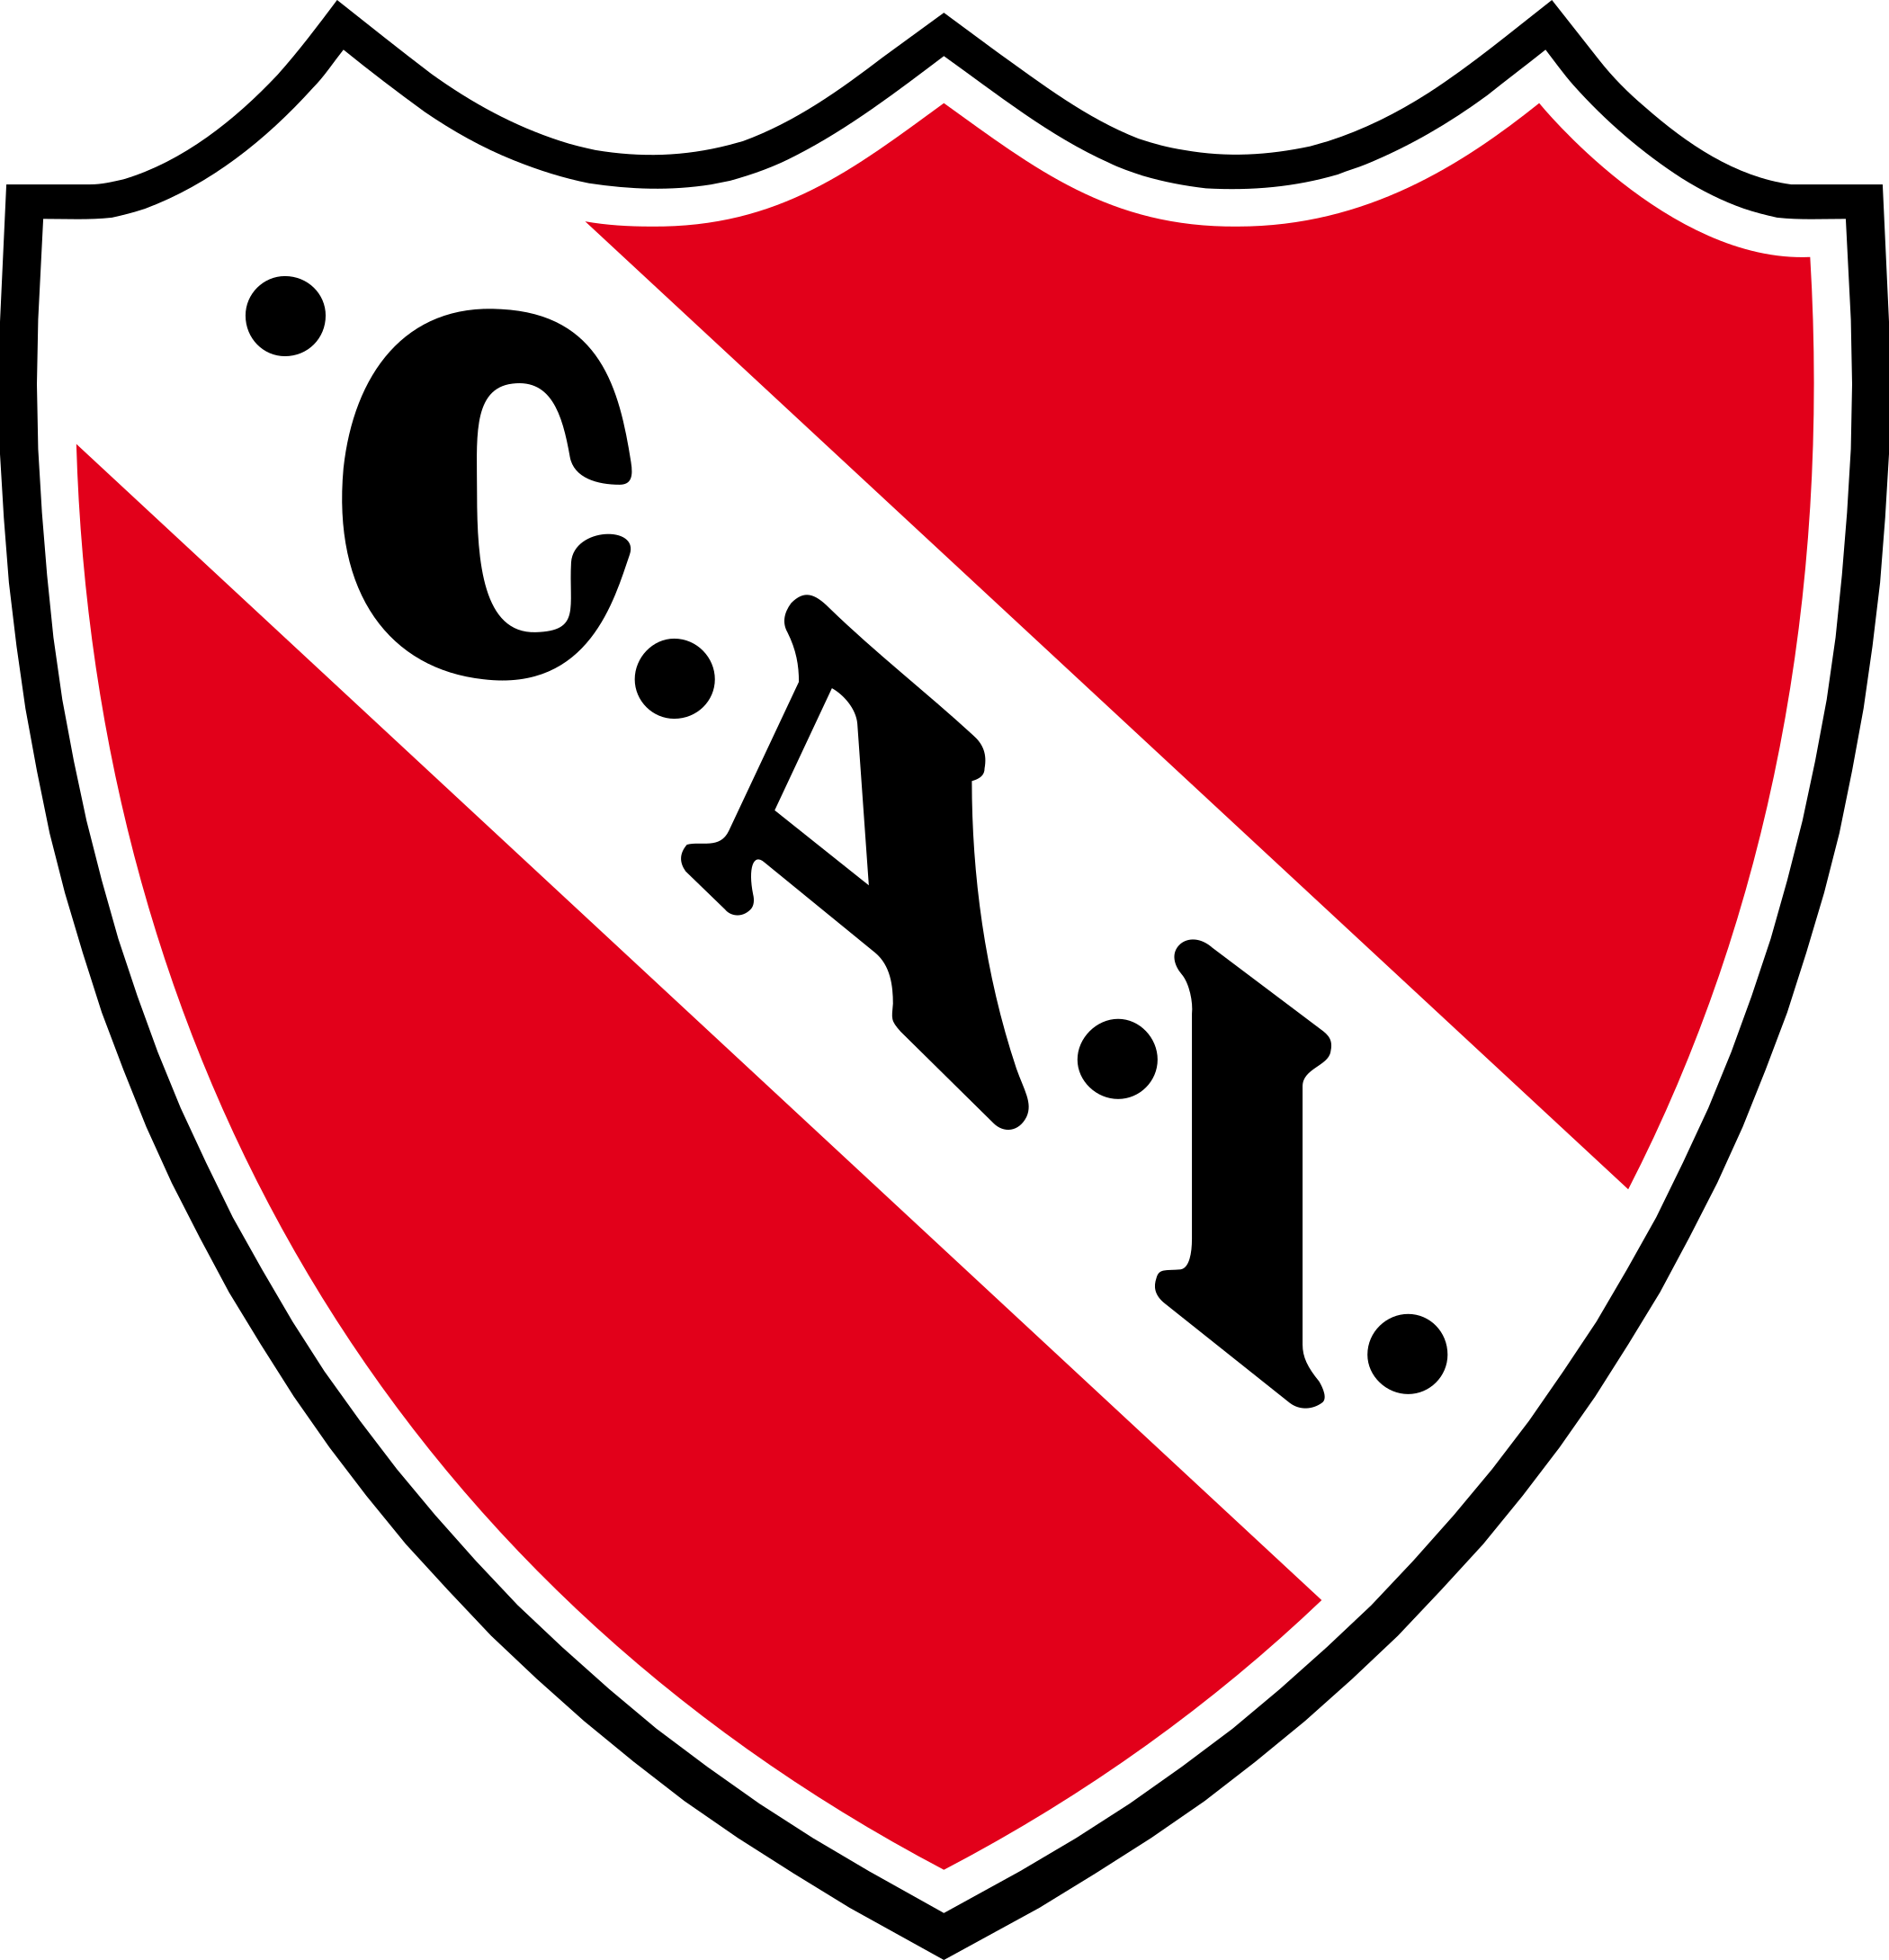 clube independiente logo escudo 1 - Club Atlético Independiente Logo